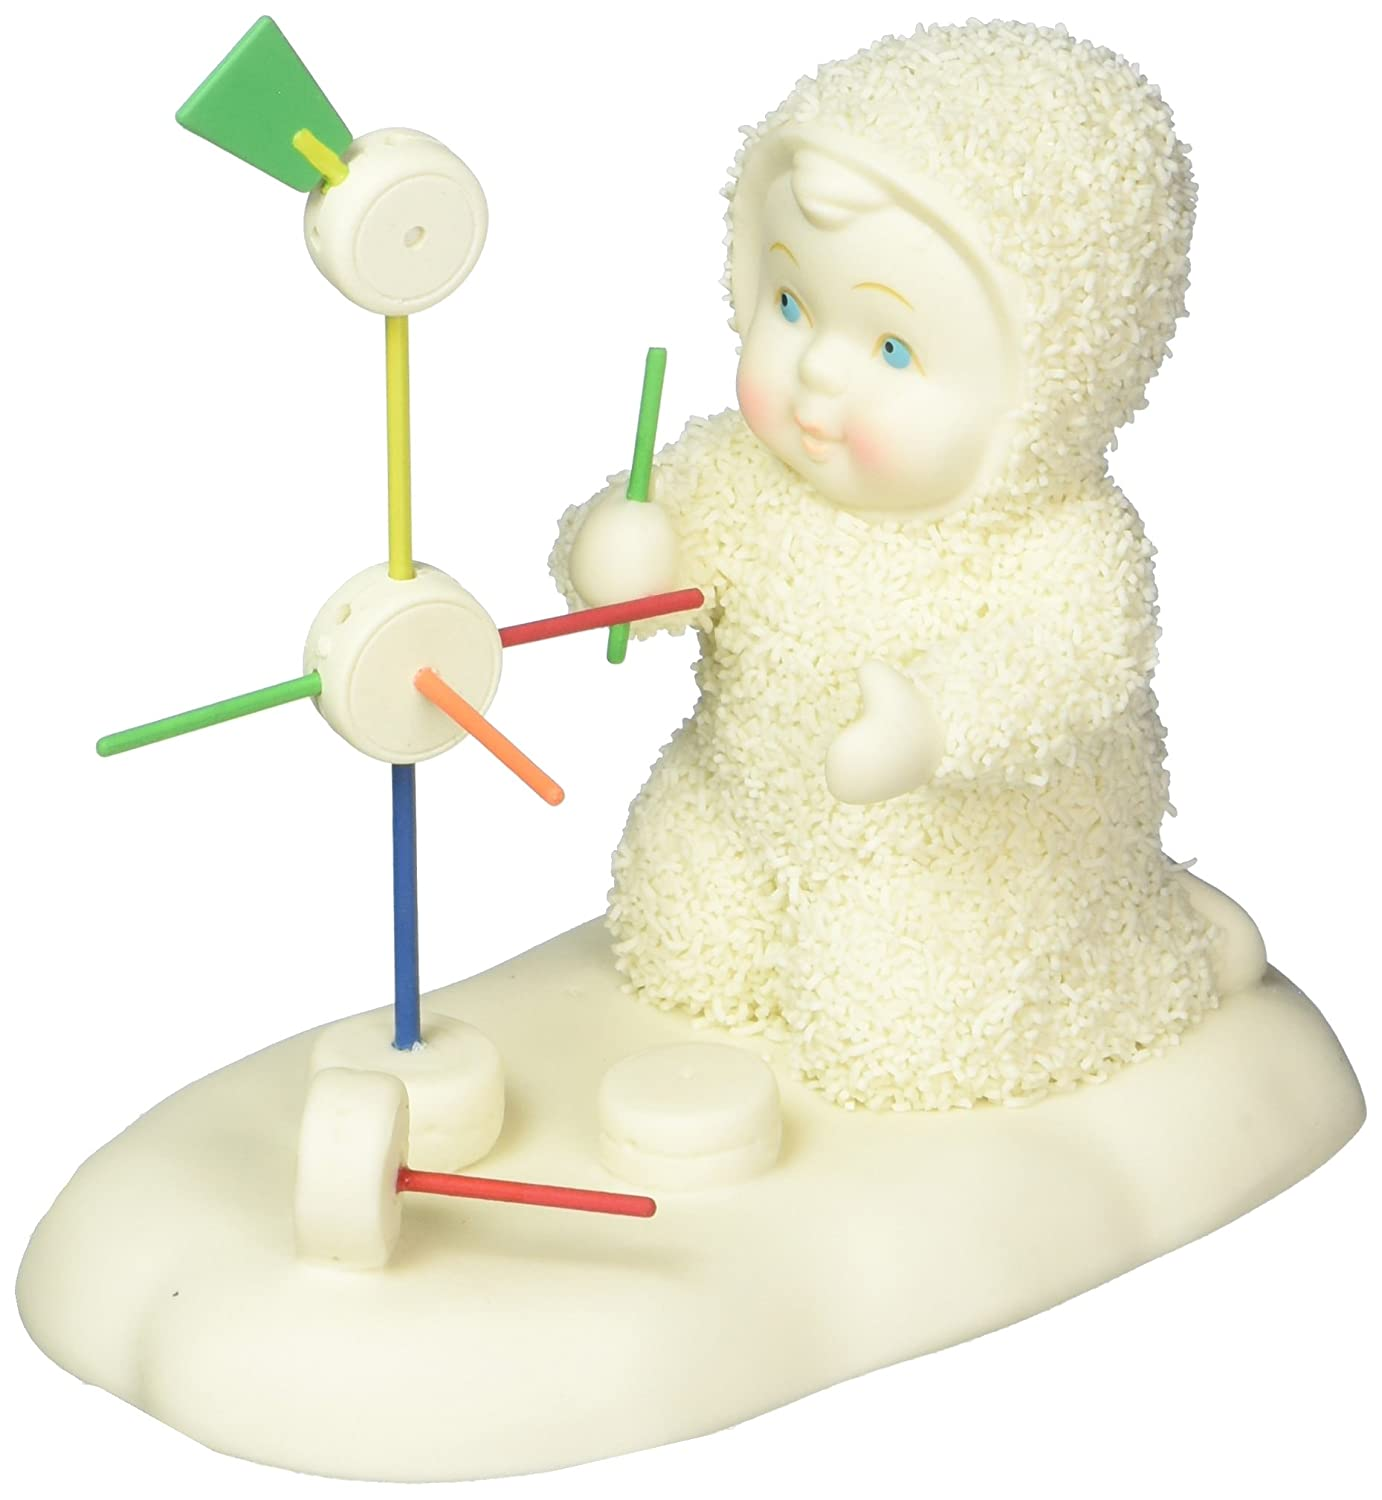 Snowbabies Department 56 Guest Collection Tinkering Away Figurine, 3.54 3.54 Enesco Gift 4045233